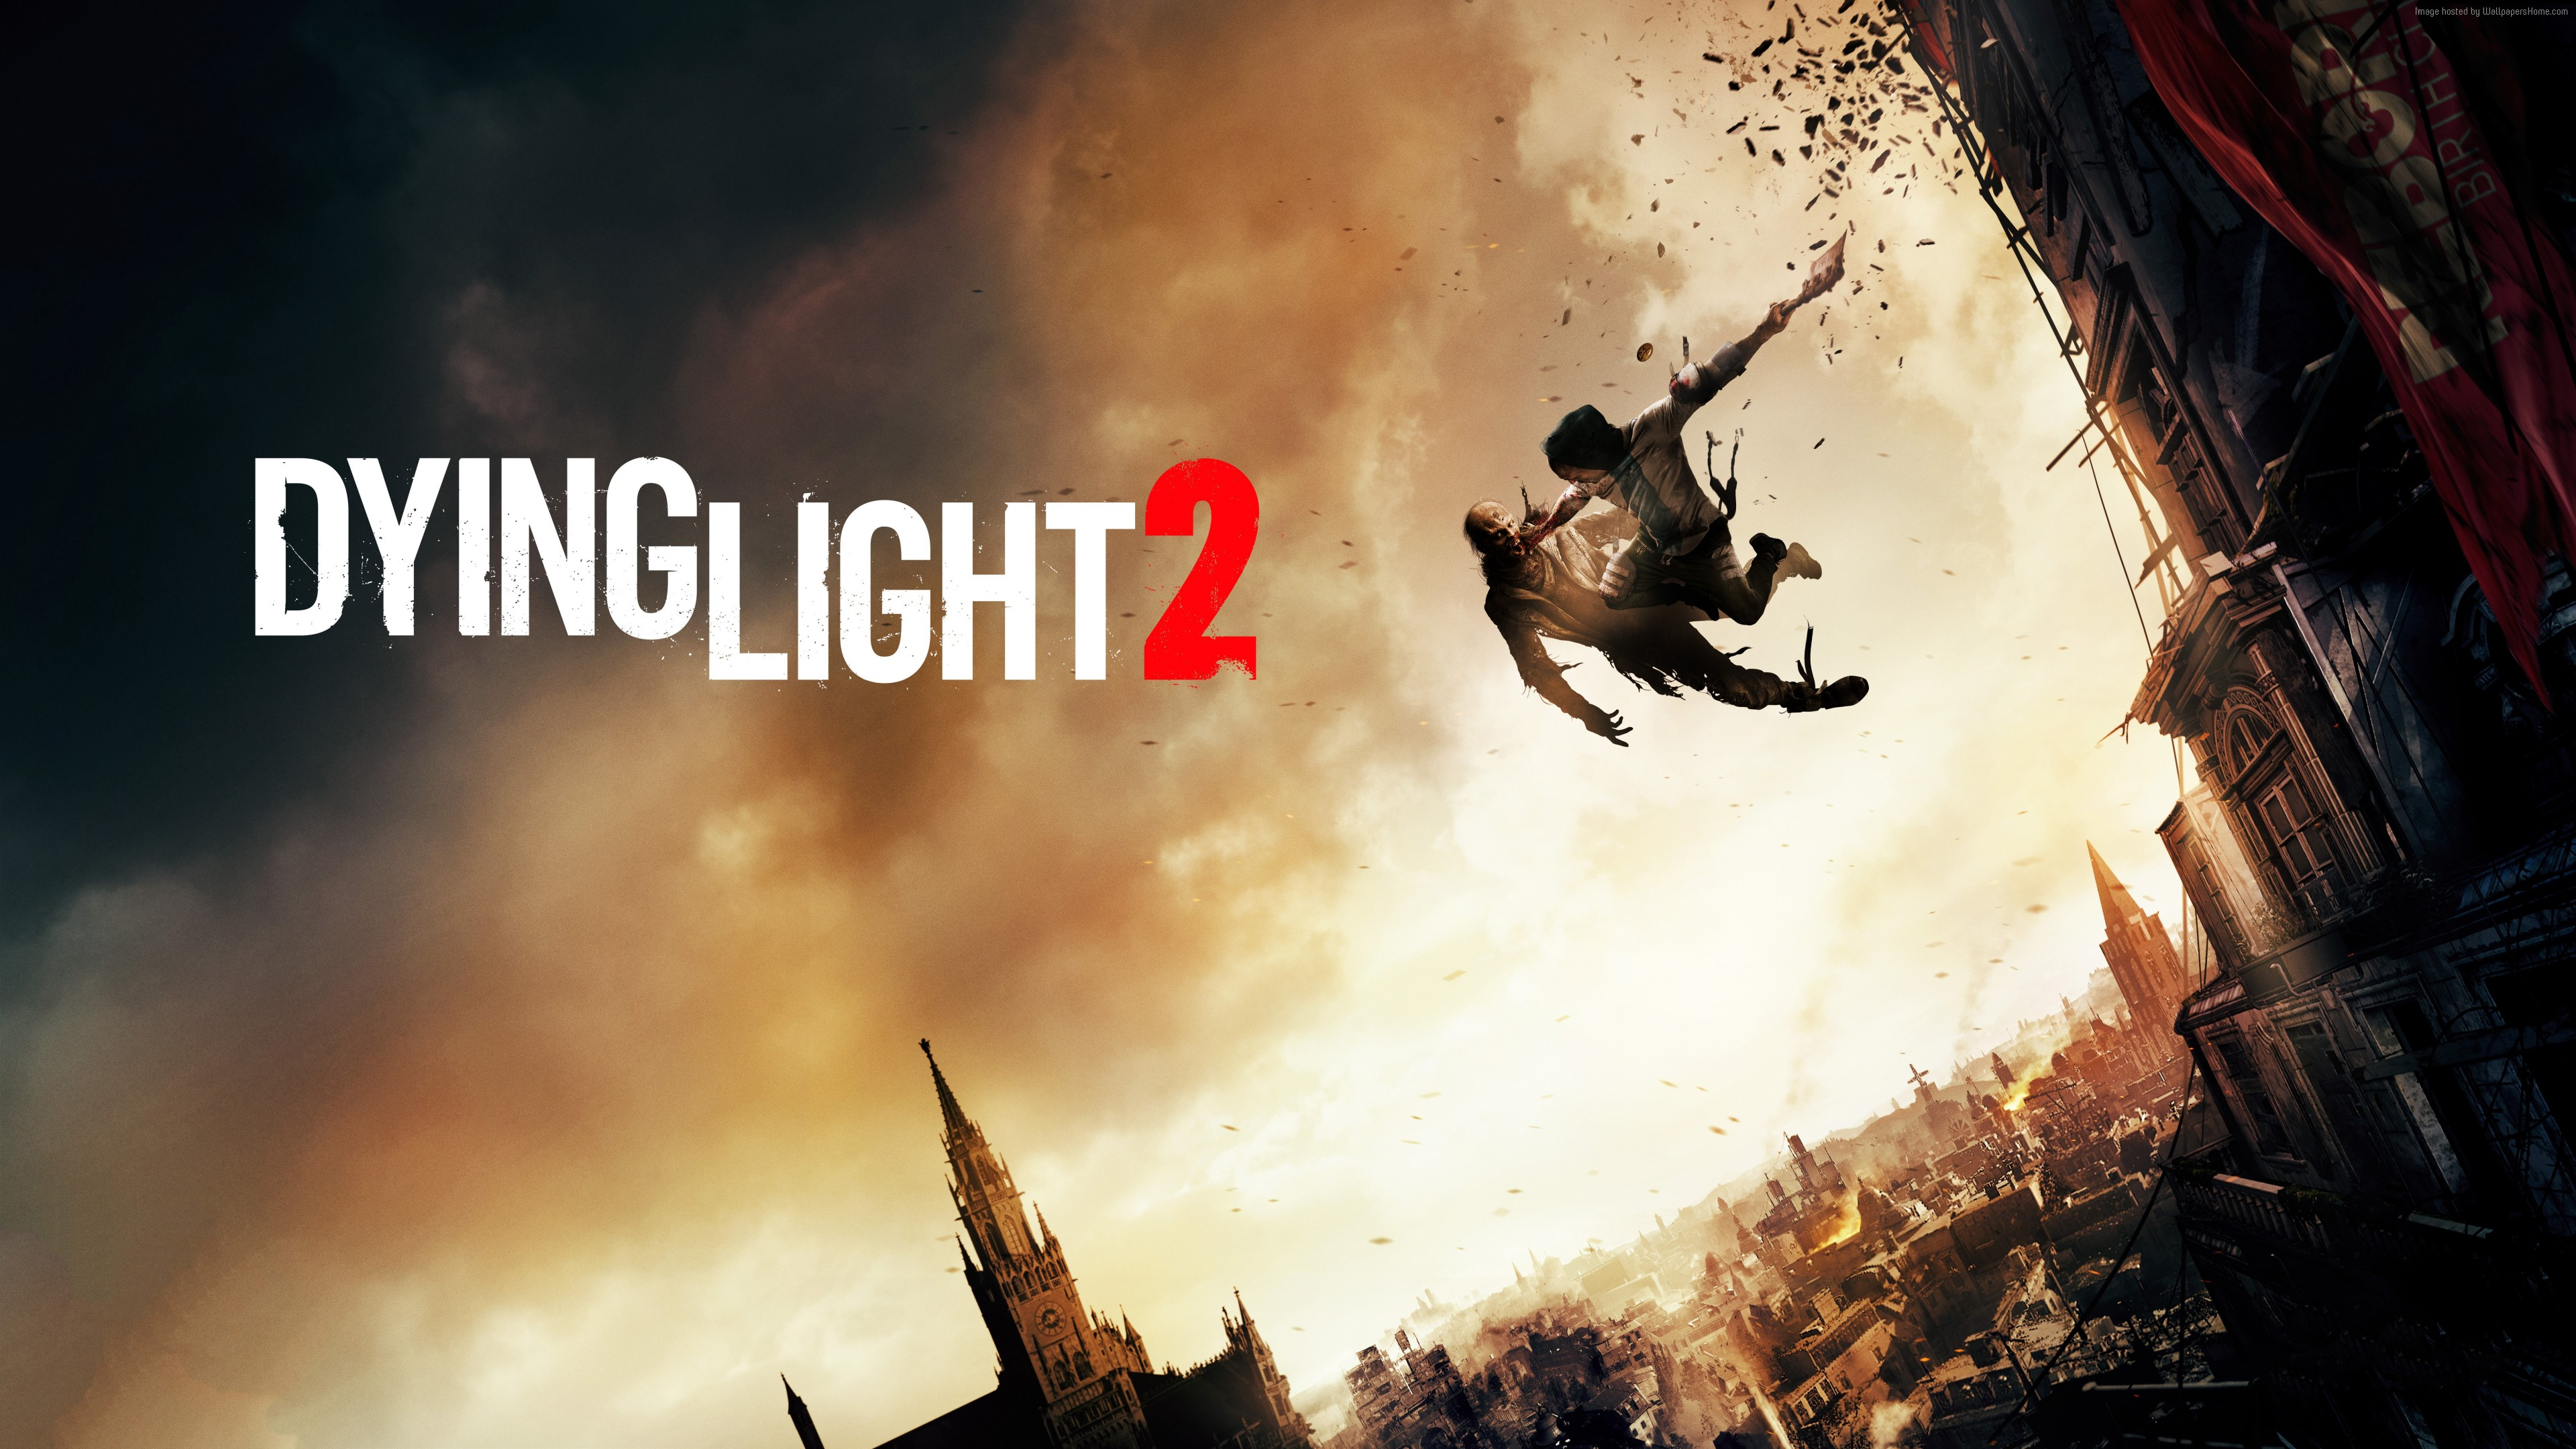 Wallpaper Dying Light 2, E3 2018, poster, 8K, Games